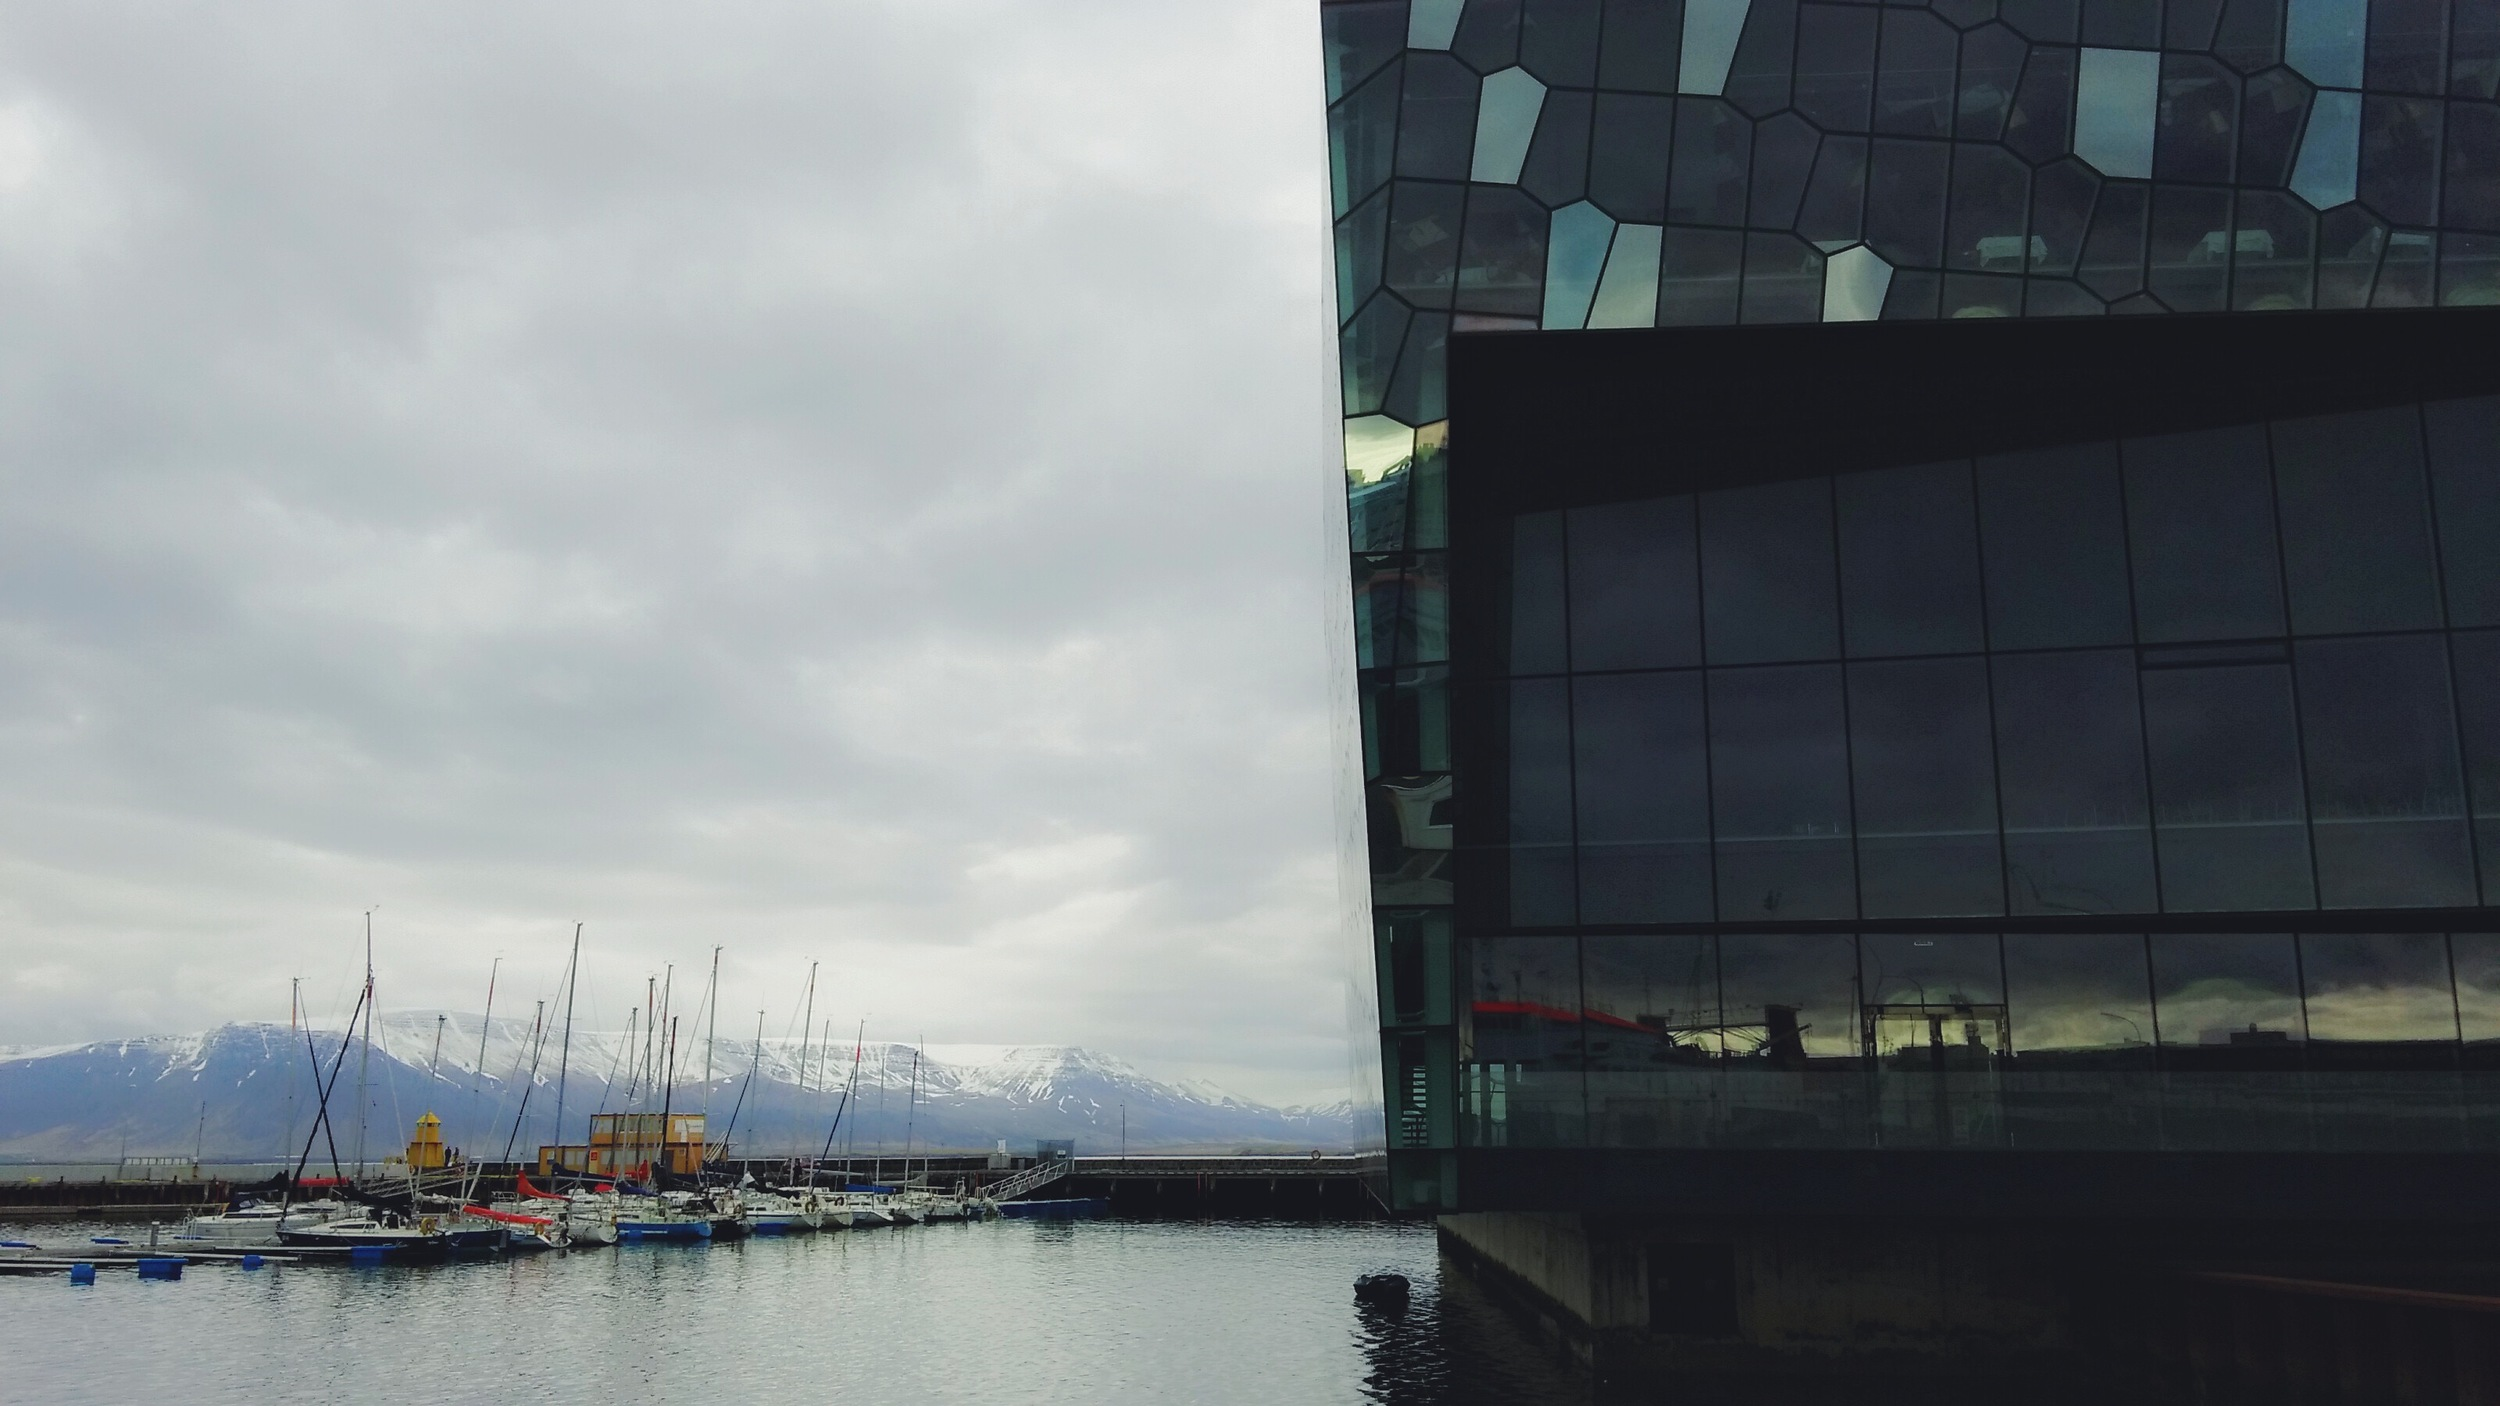 Another view of Reykjavik!